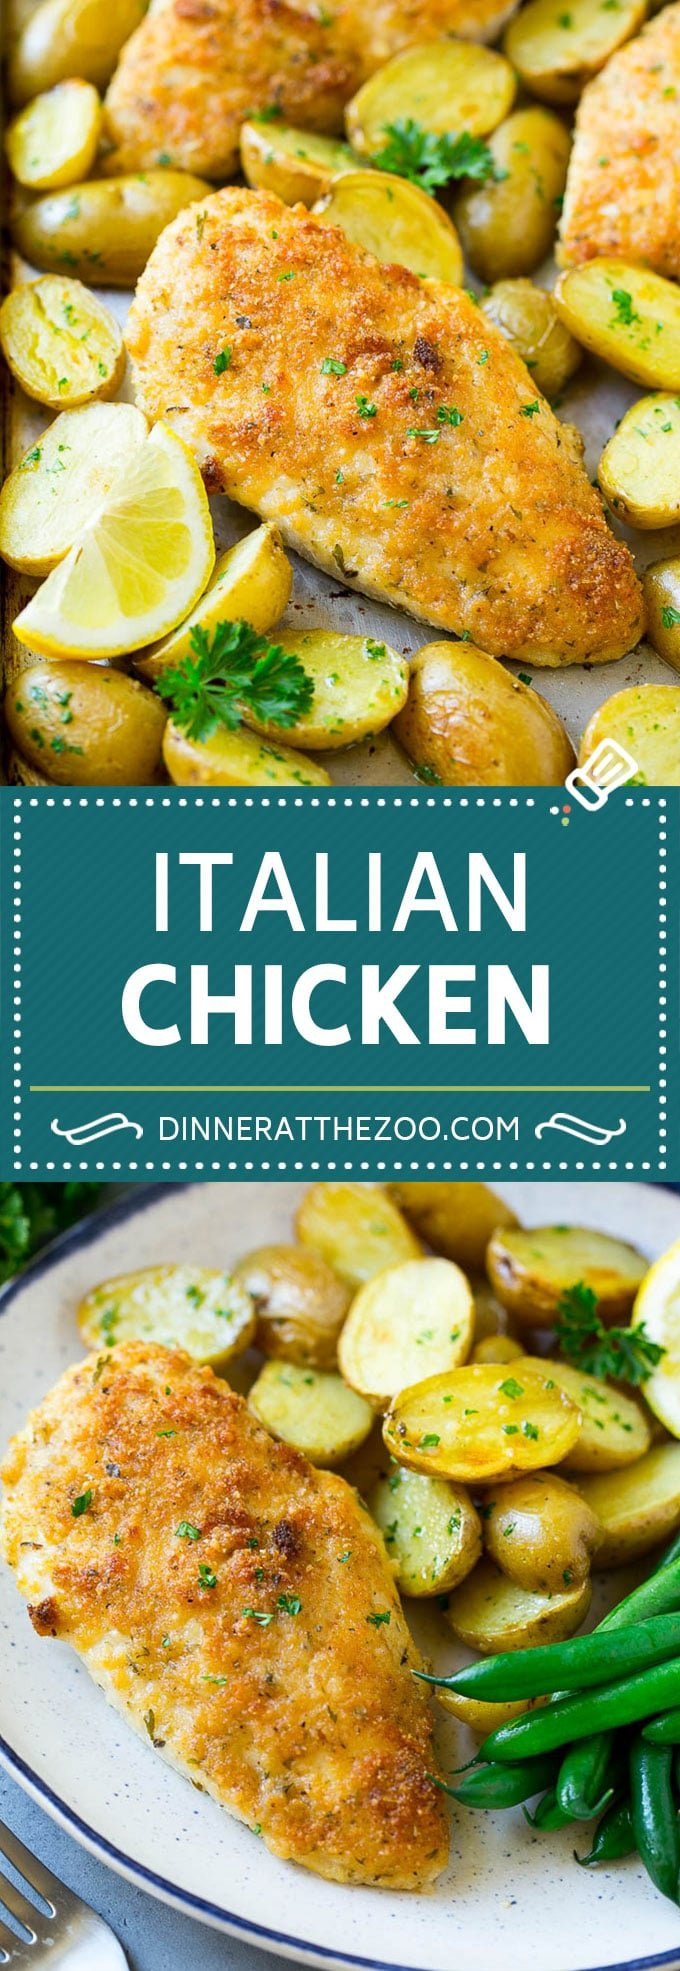 Italian Chicken Recipe | Sheet Pan Chicken | Baked Chicken #chicken #potatoes #dinner #dinneratthezoo